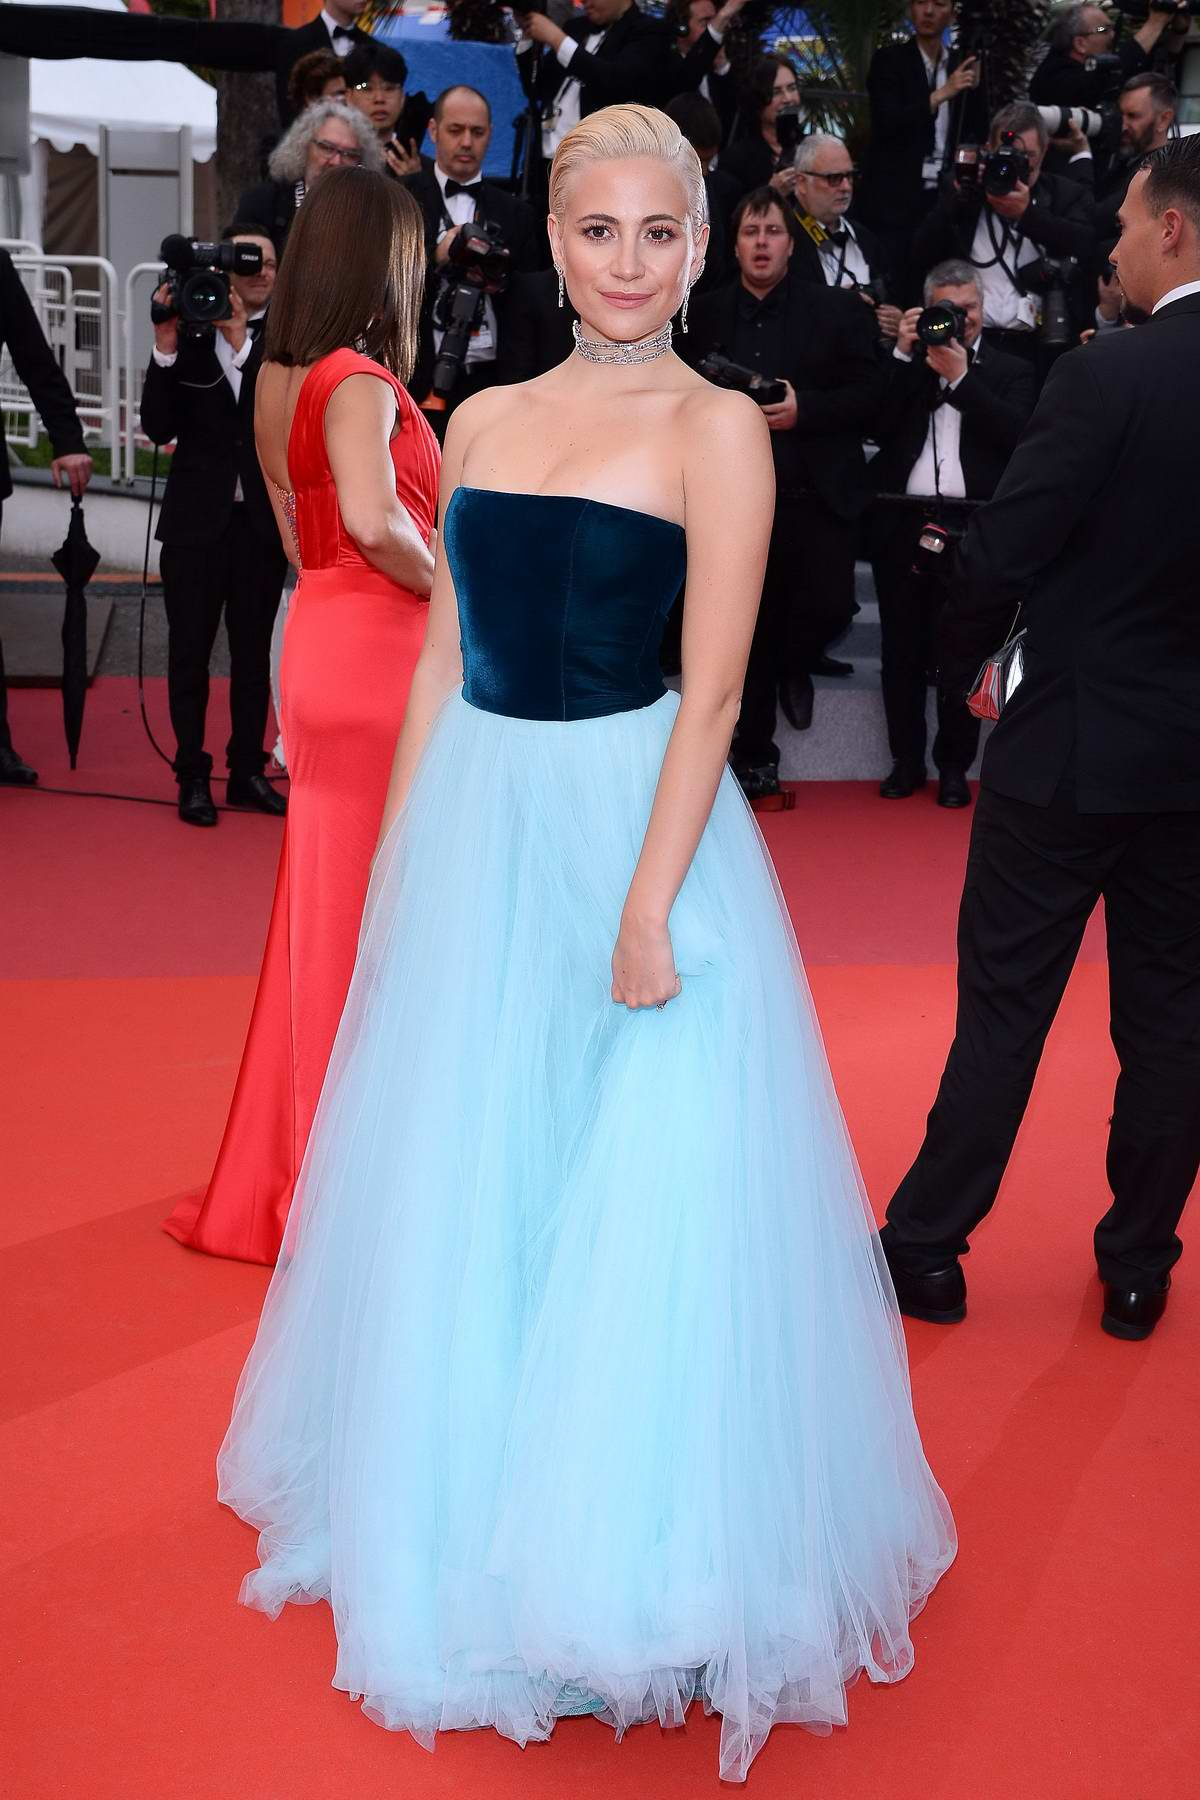 Pixie Lott attends the screening of 'La Belle Epoque' during the 72nd annual Cannes Film Festival in Cannes, France